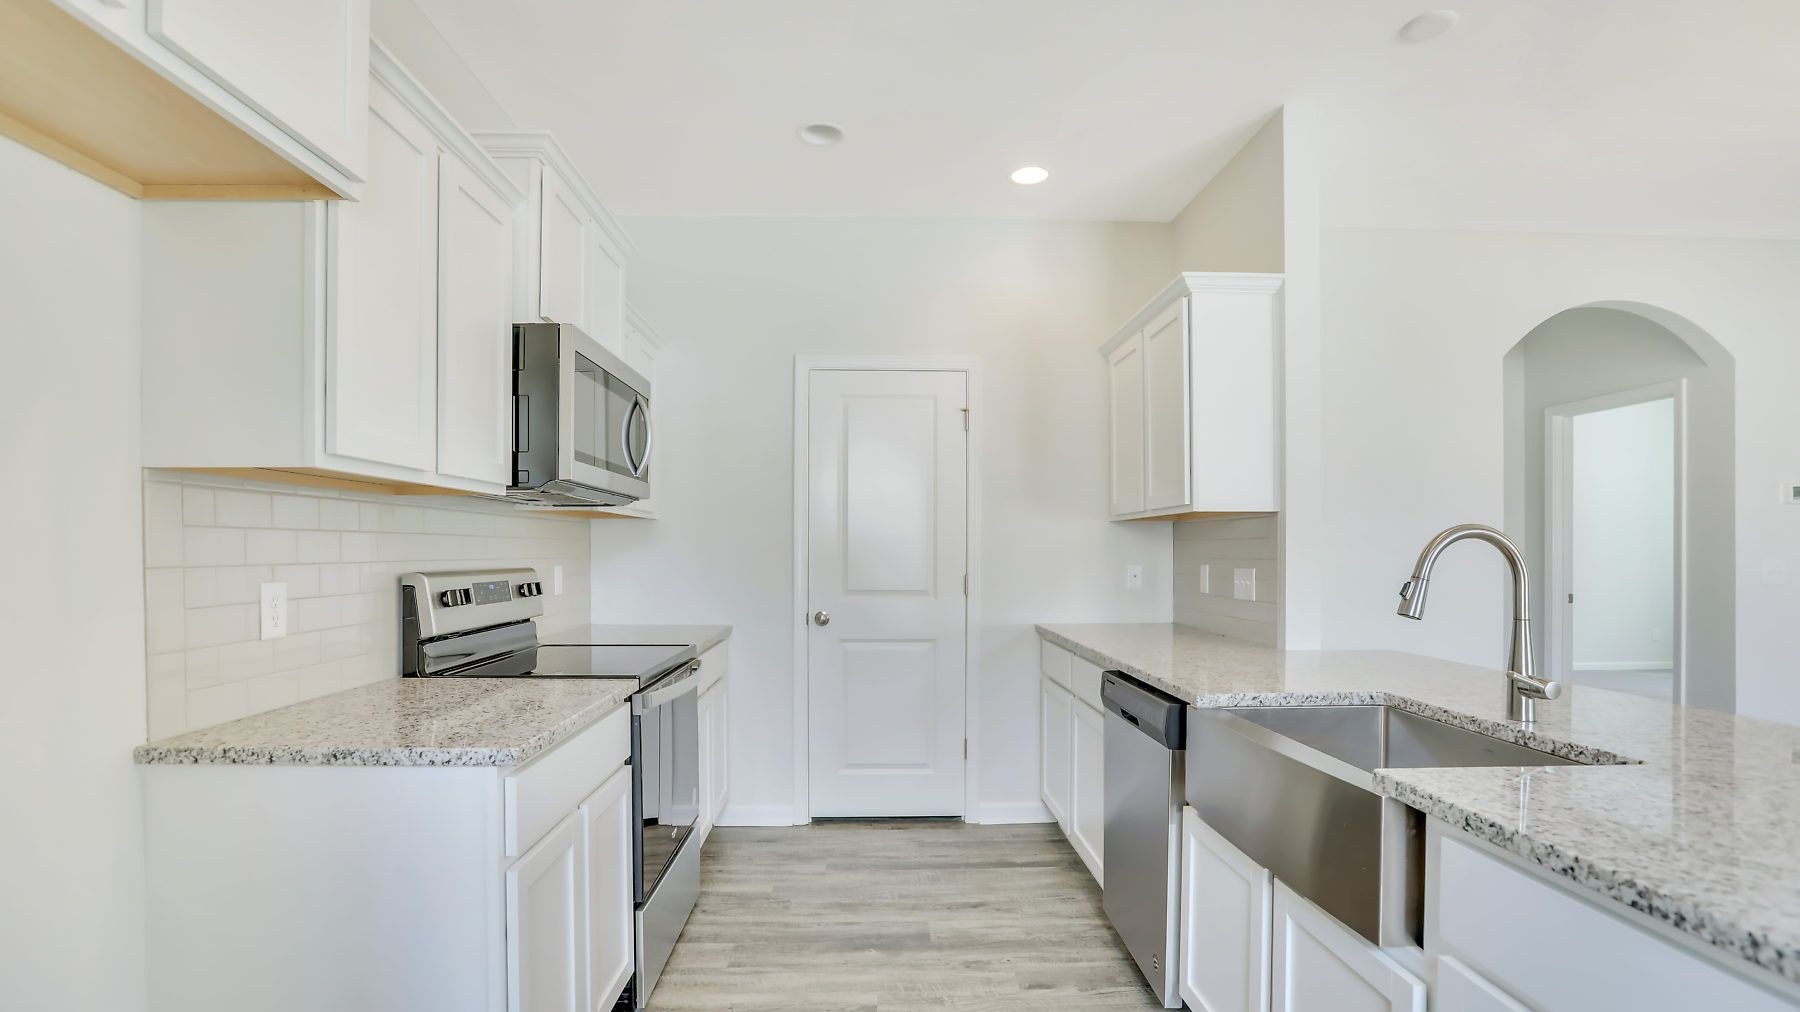 Kitchen featured in The May River By Village Park Homes in Savannah, GA